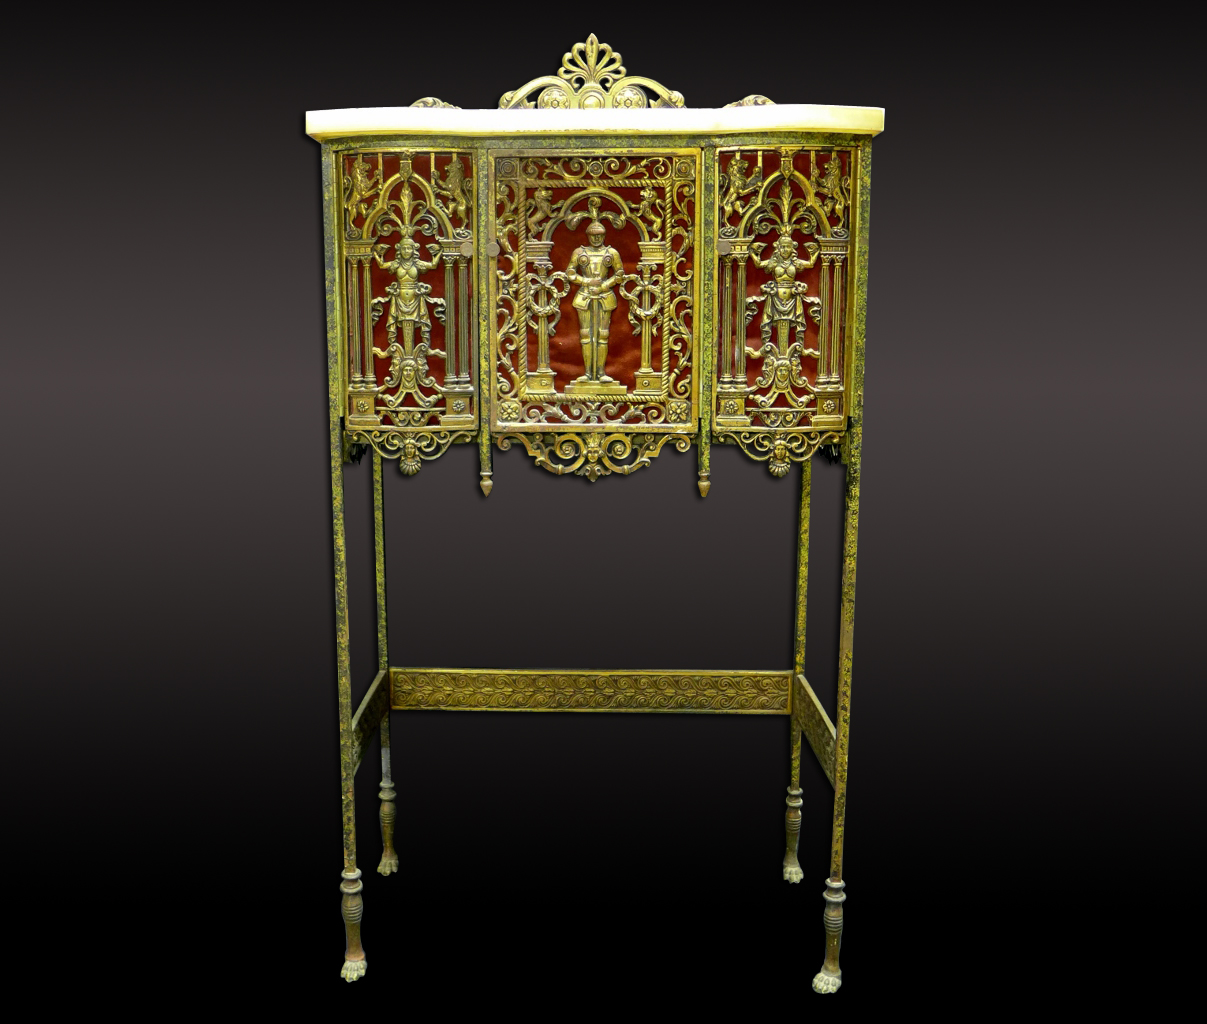 Sterling Assoc. to auction estate-fresh modern, decorative art, May 13